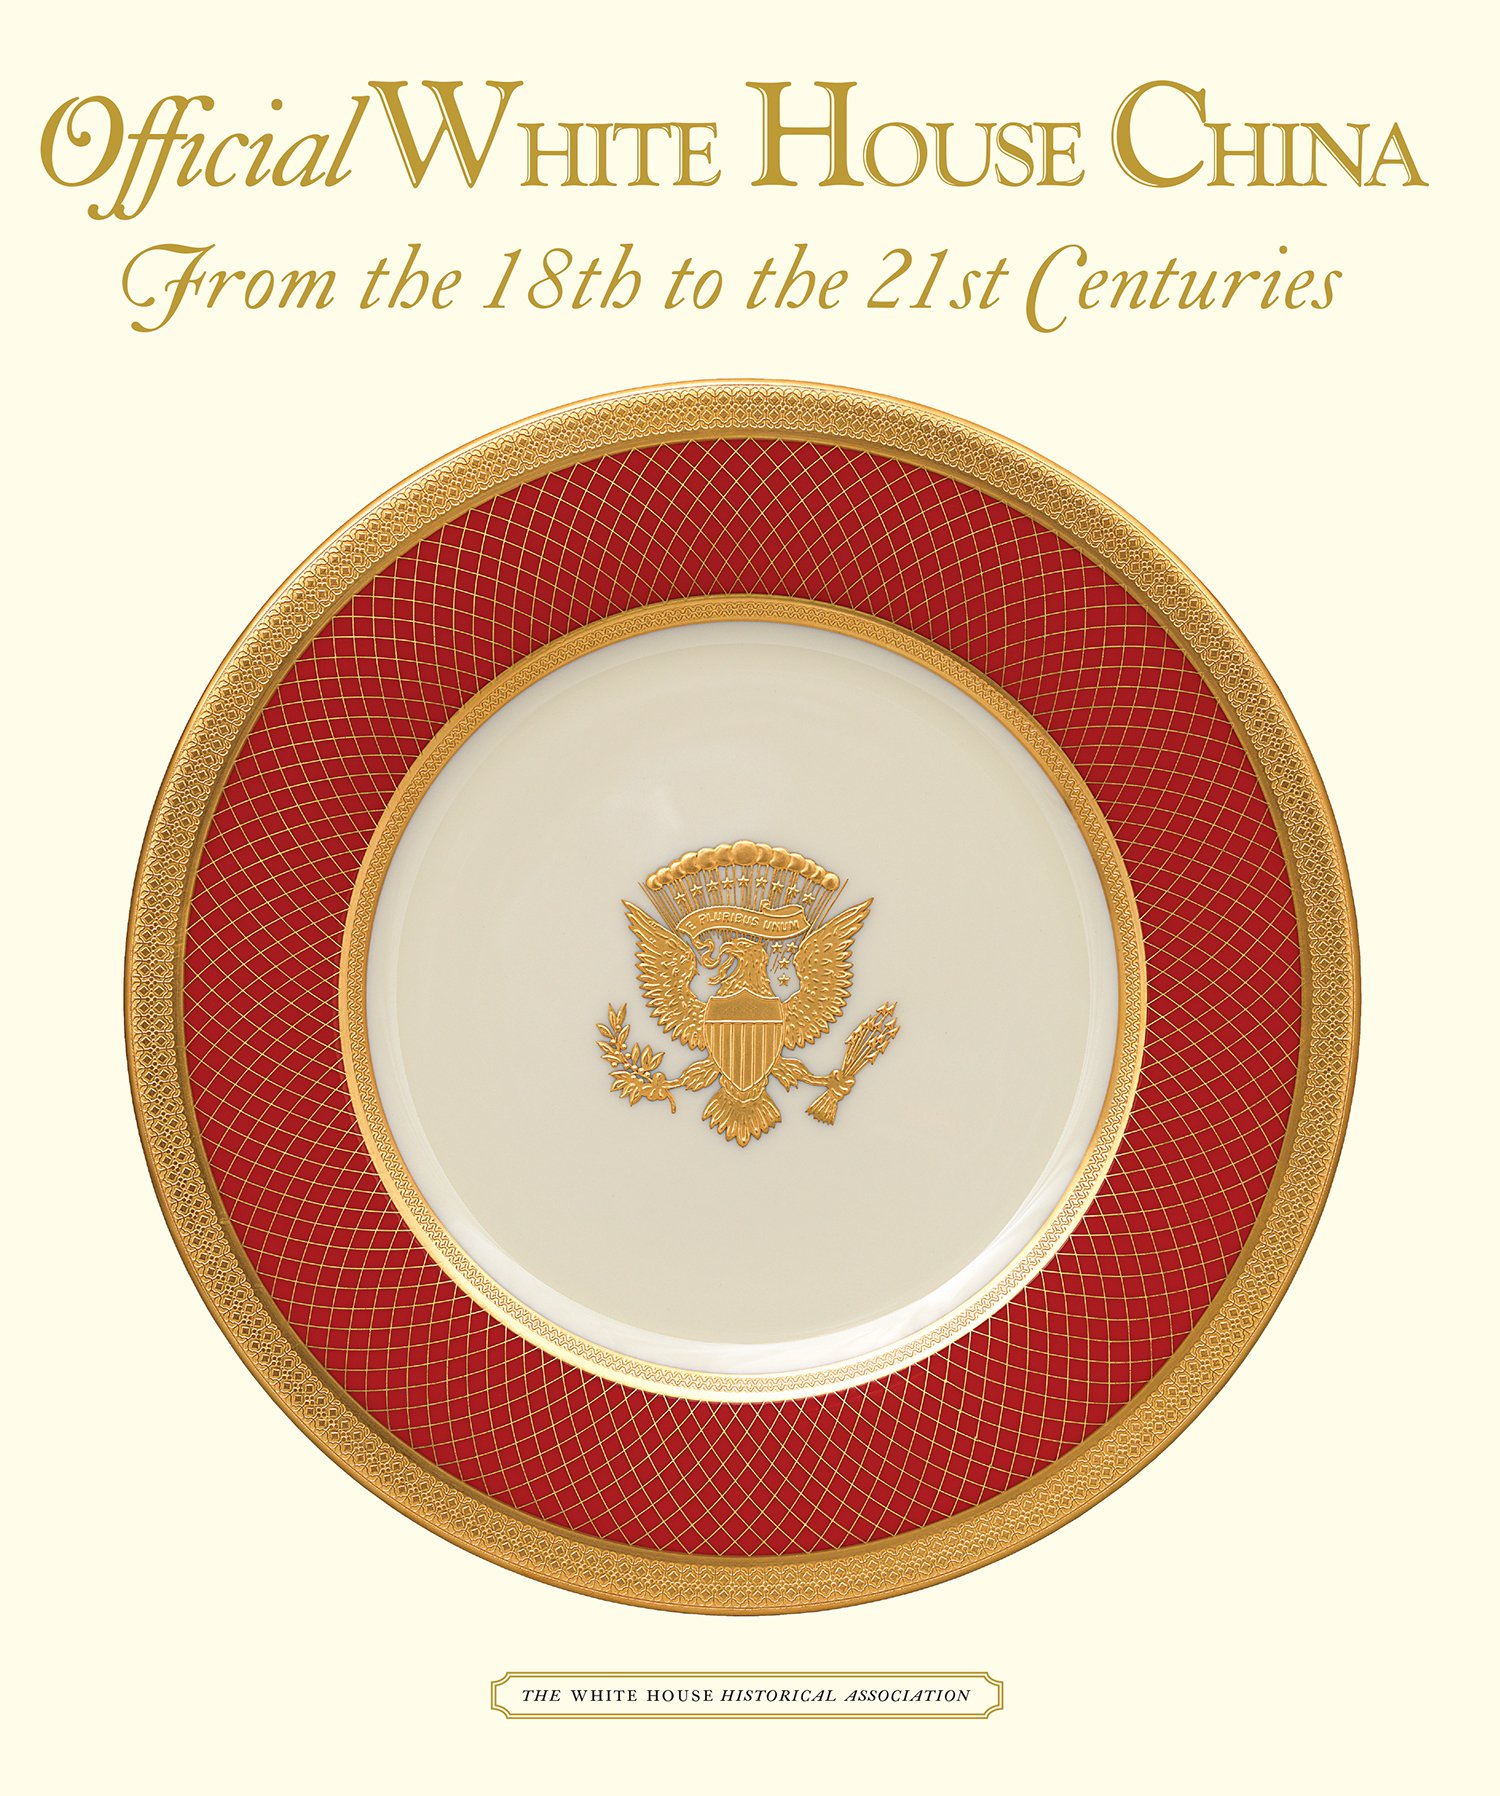 Official White House China, From the 18th to the 21st Centuries